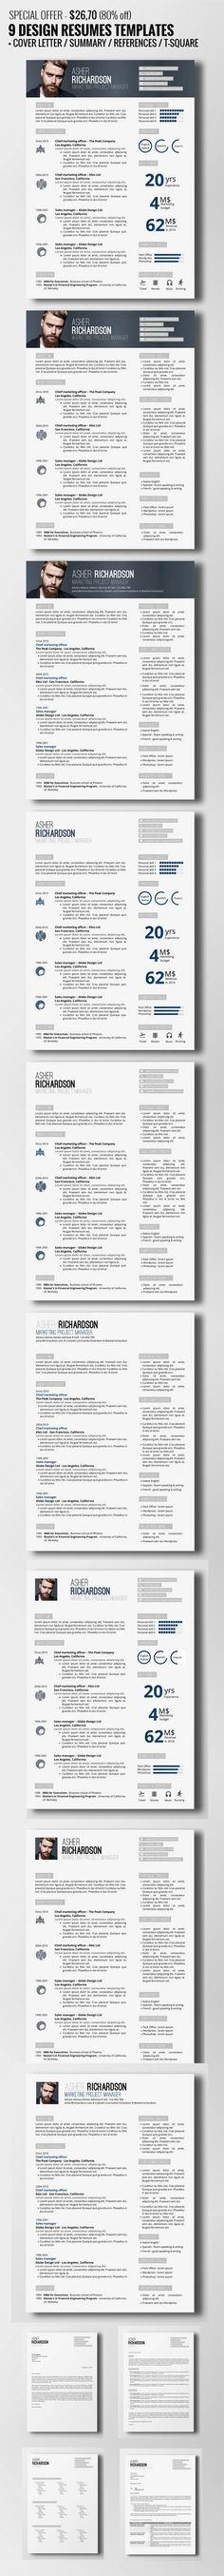 435 best Resume images on Pinterest Resume design, Design resume - modern professional resume